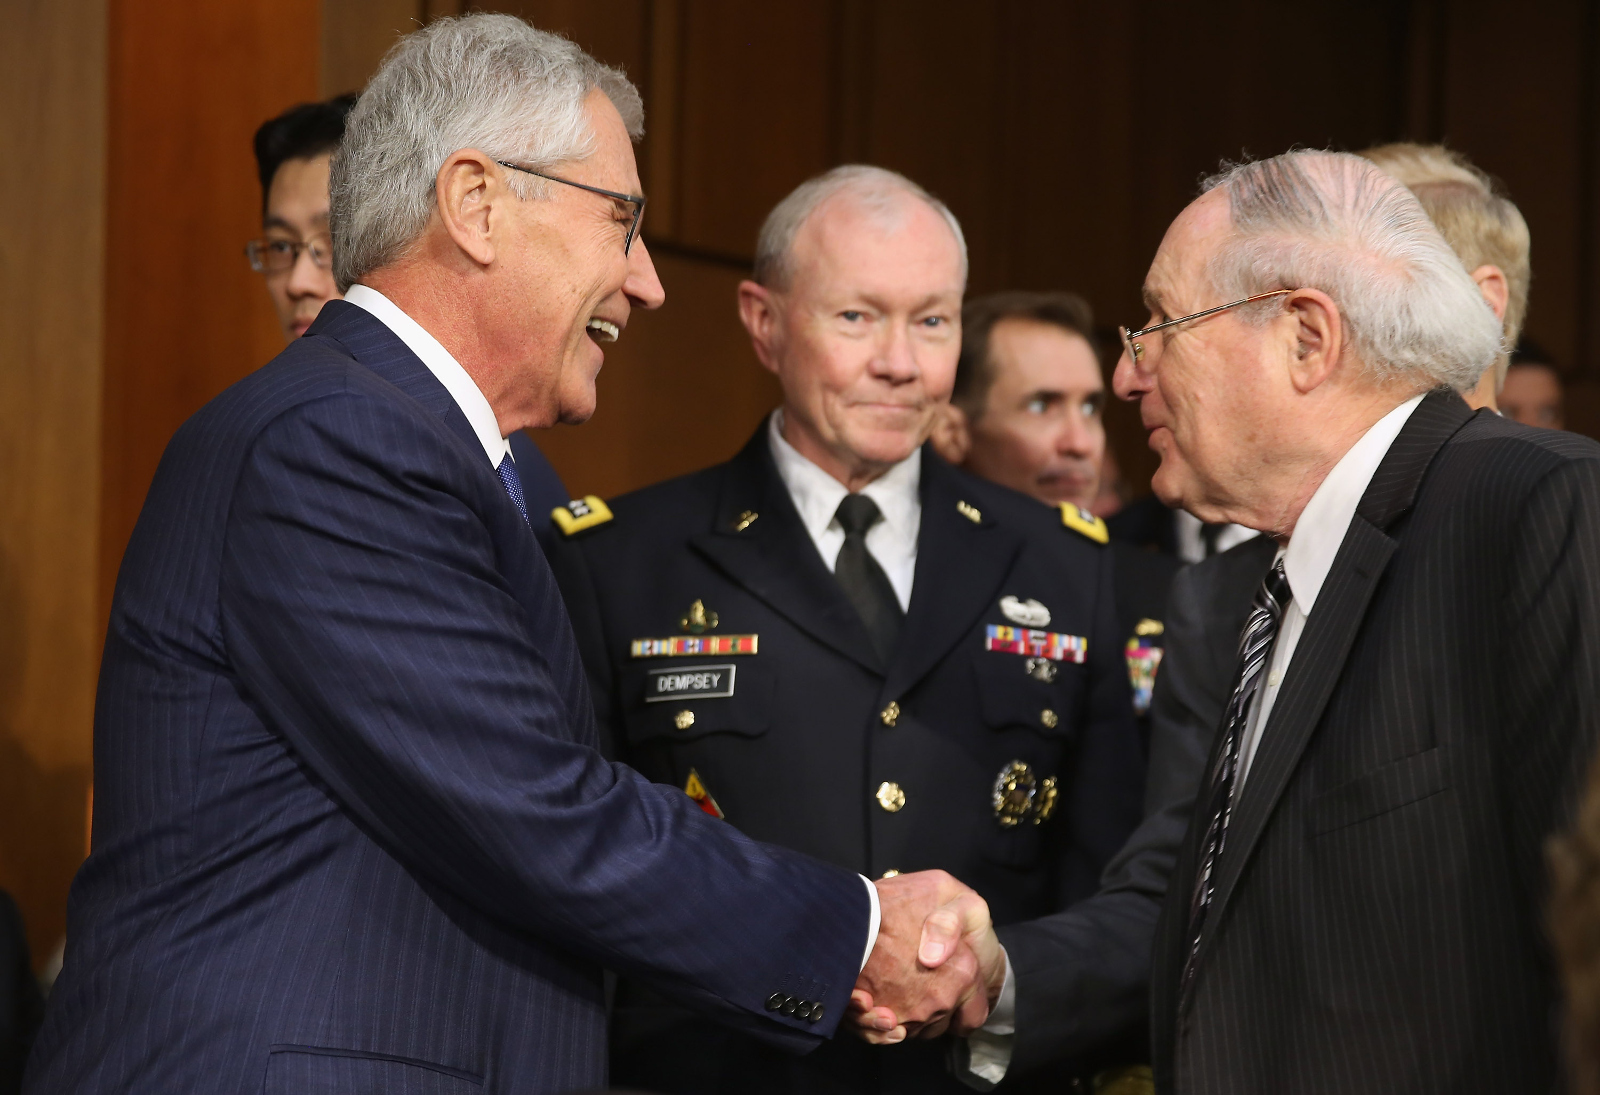 Chuck-Hagel-and-Martin-Dempsey-Greet-Carl-Levin